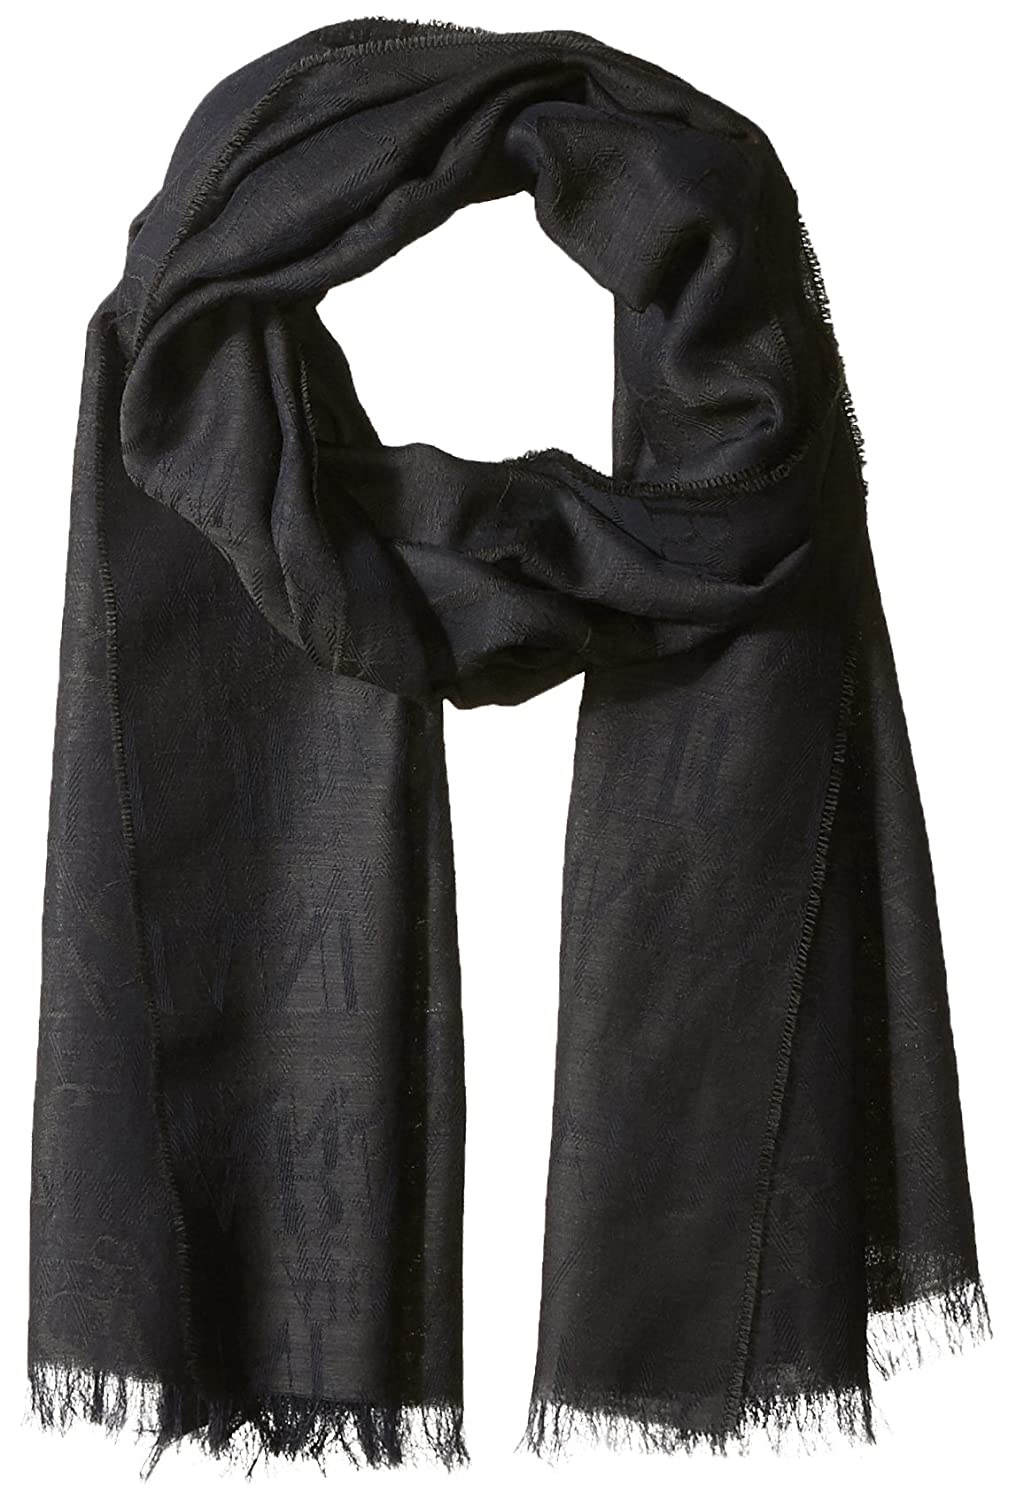 Armani Exchange Men\'s Solid Wool and Modal Fabric Scarf Armani Jeans Green/Black ONE Size 9340237A708